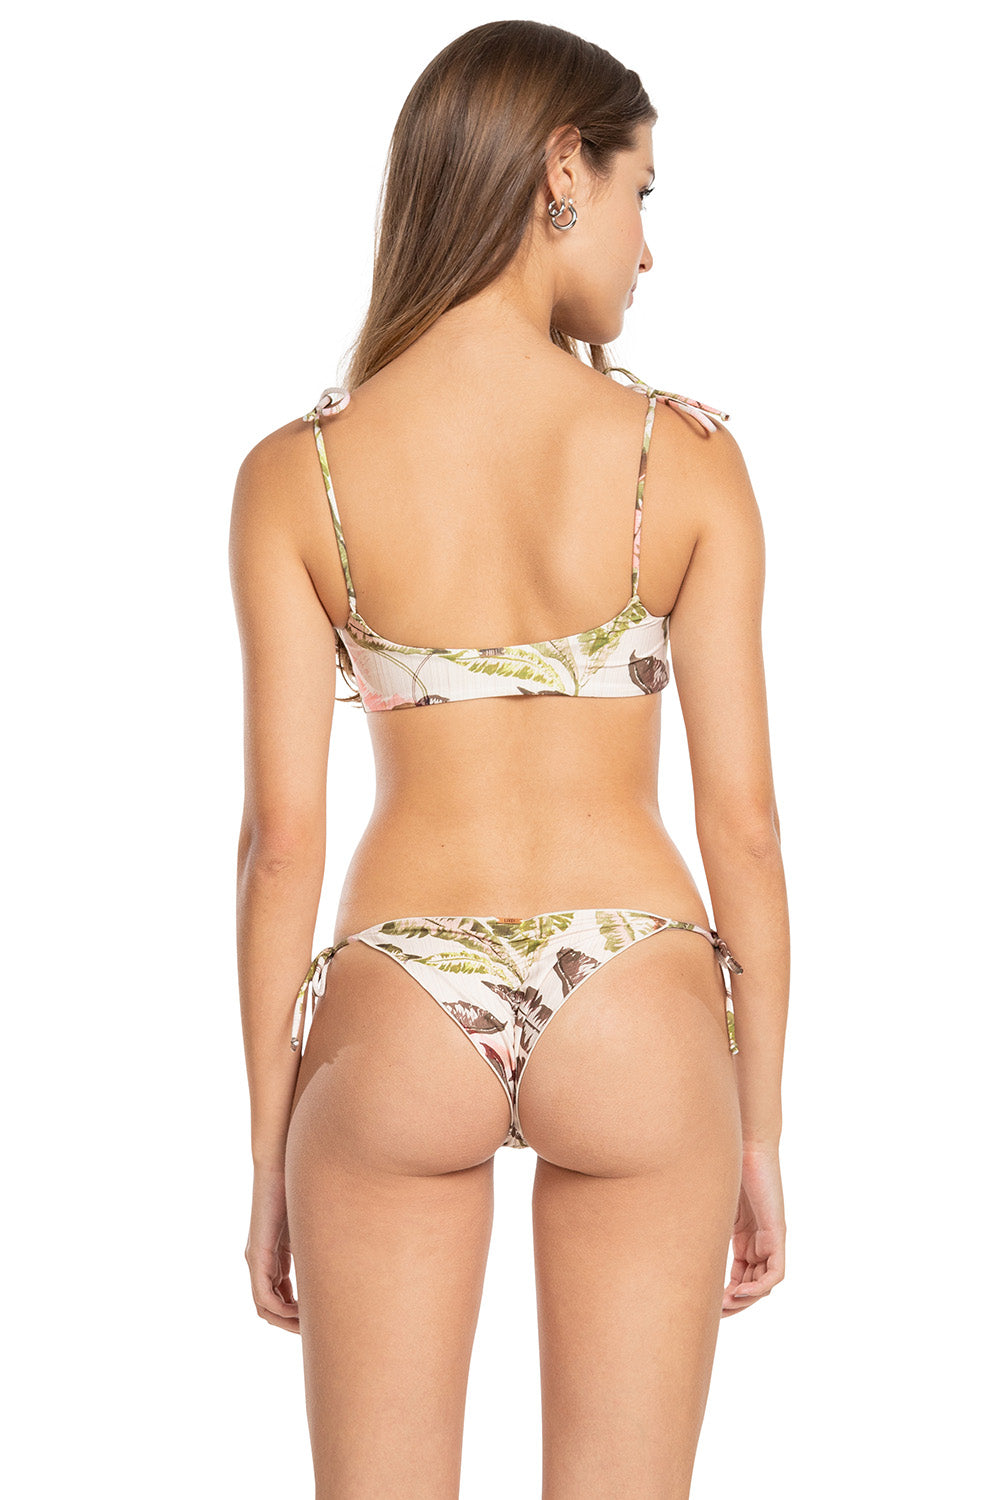 Trancoso Body Curve Top 2